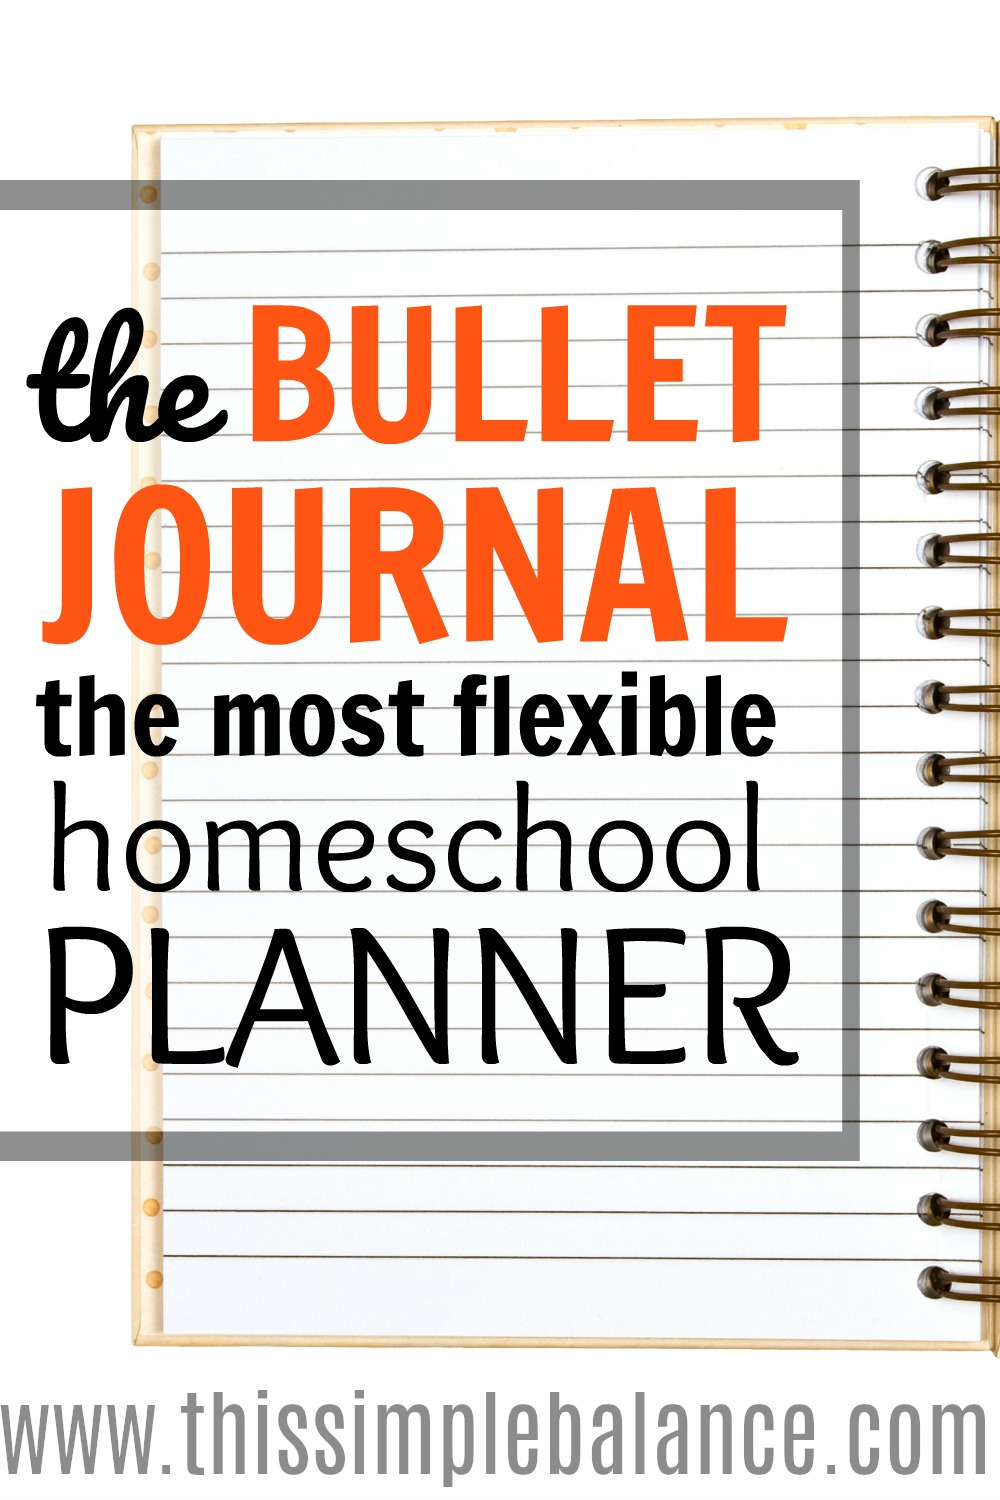 Bullet Journaling for Homeschool Moms: This post gives practical ideas for how to use the bullet journal as a homeschool mom (without needing all the artsy embellishments.)